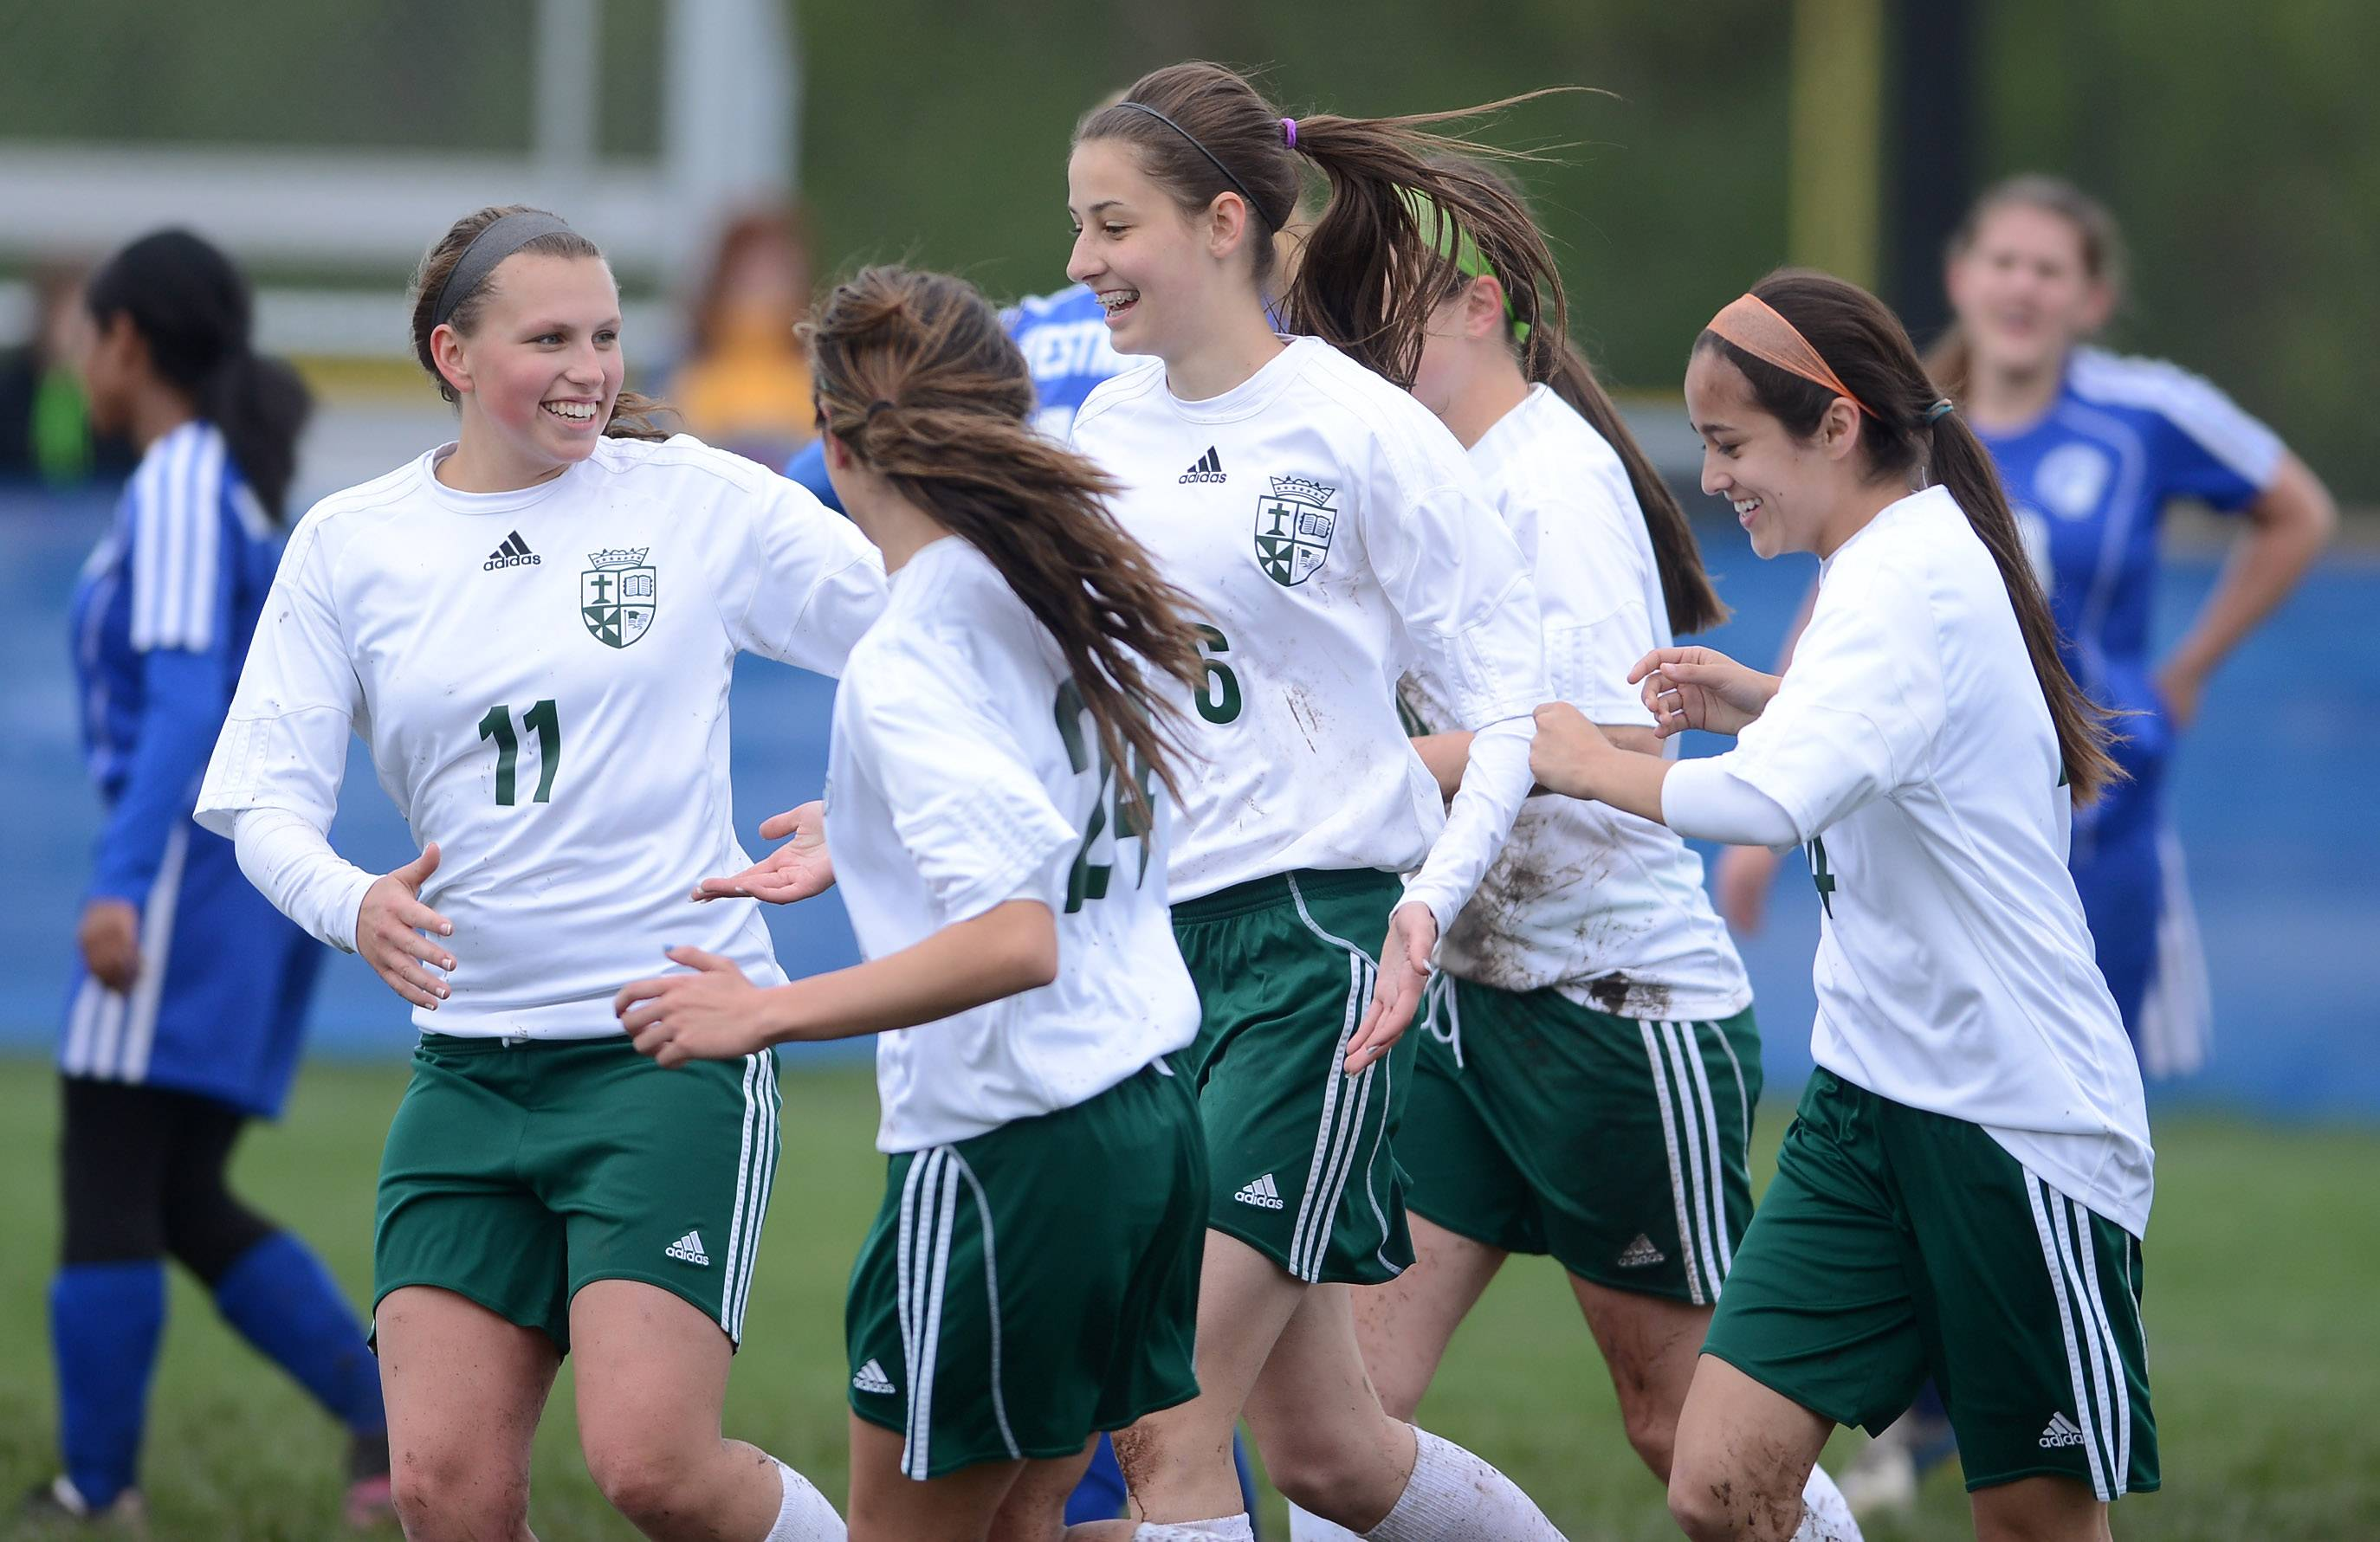 Teammates congratulate St. Edward's Chelsea Gnan (6) after a first-half goal during Friday's regional final in Elgin.